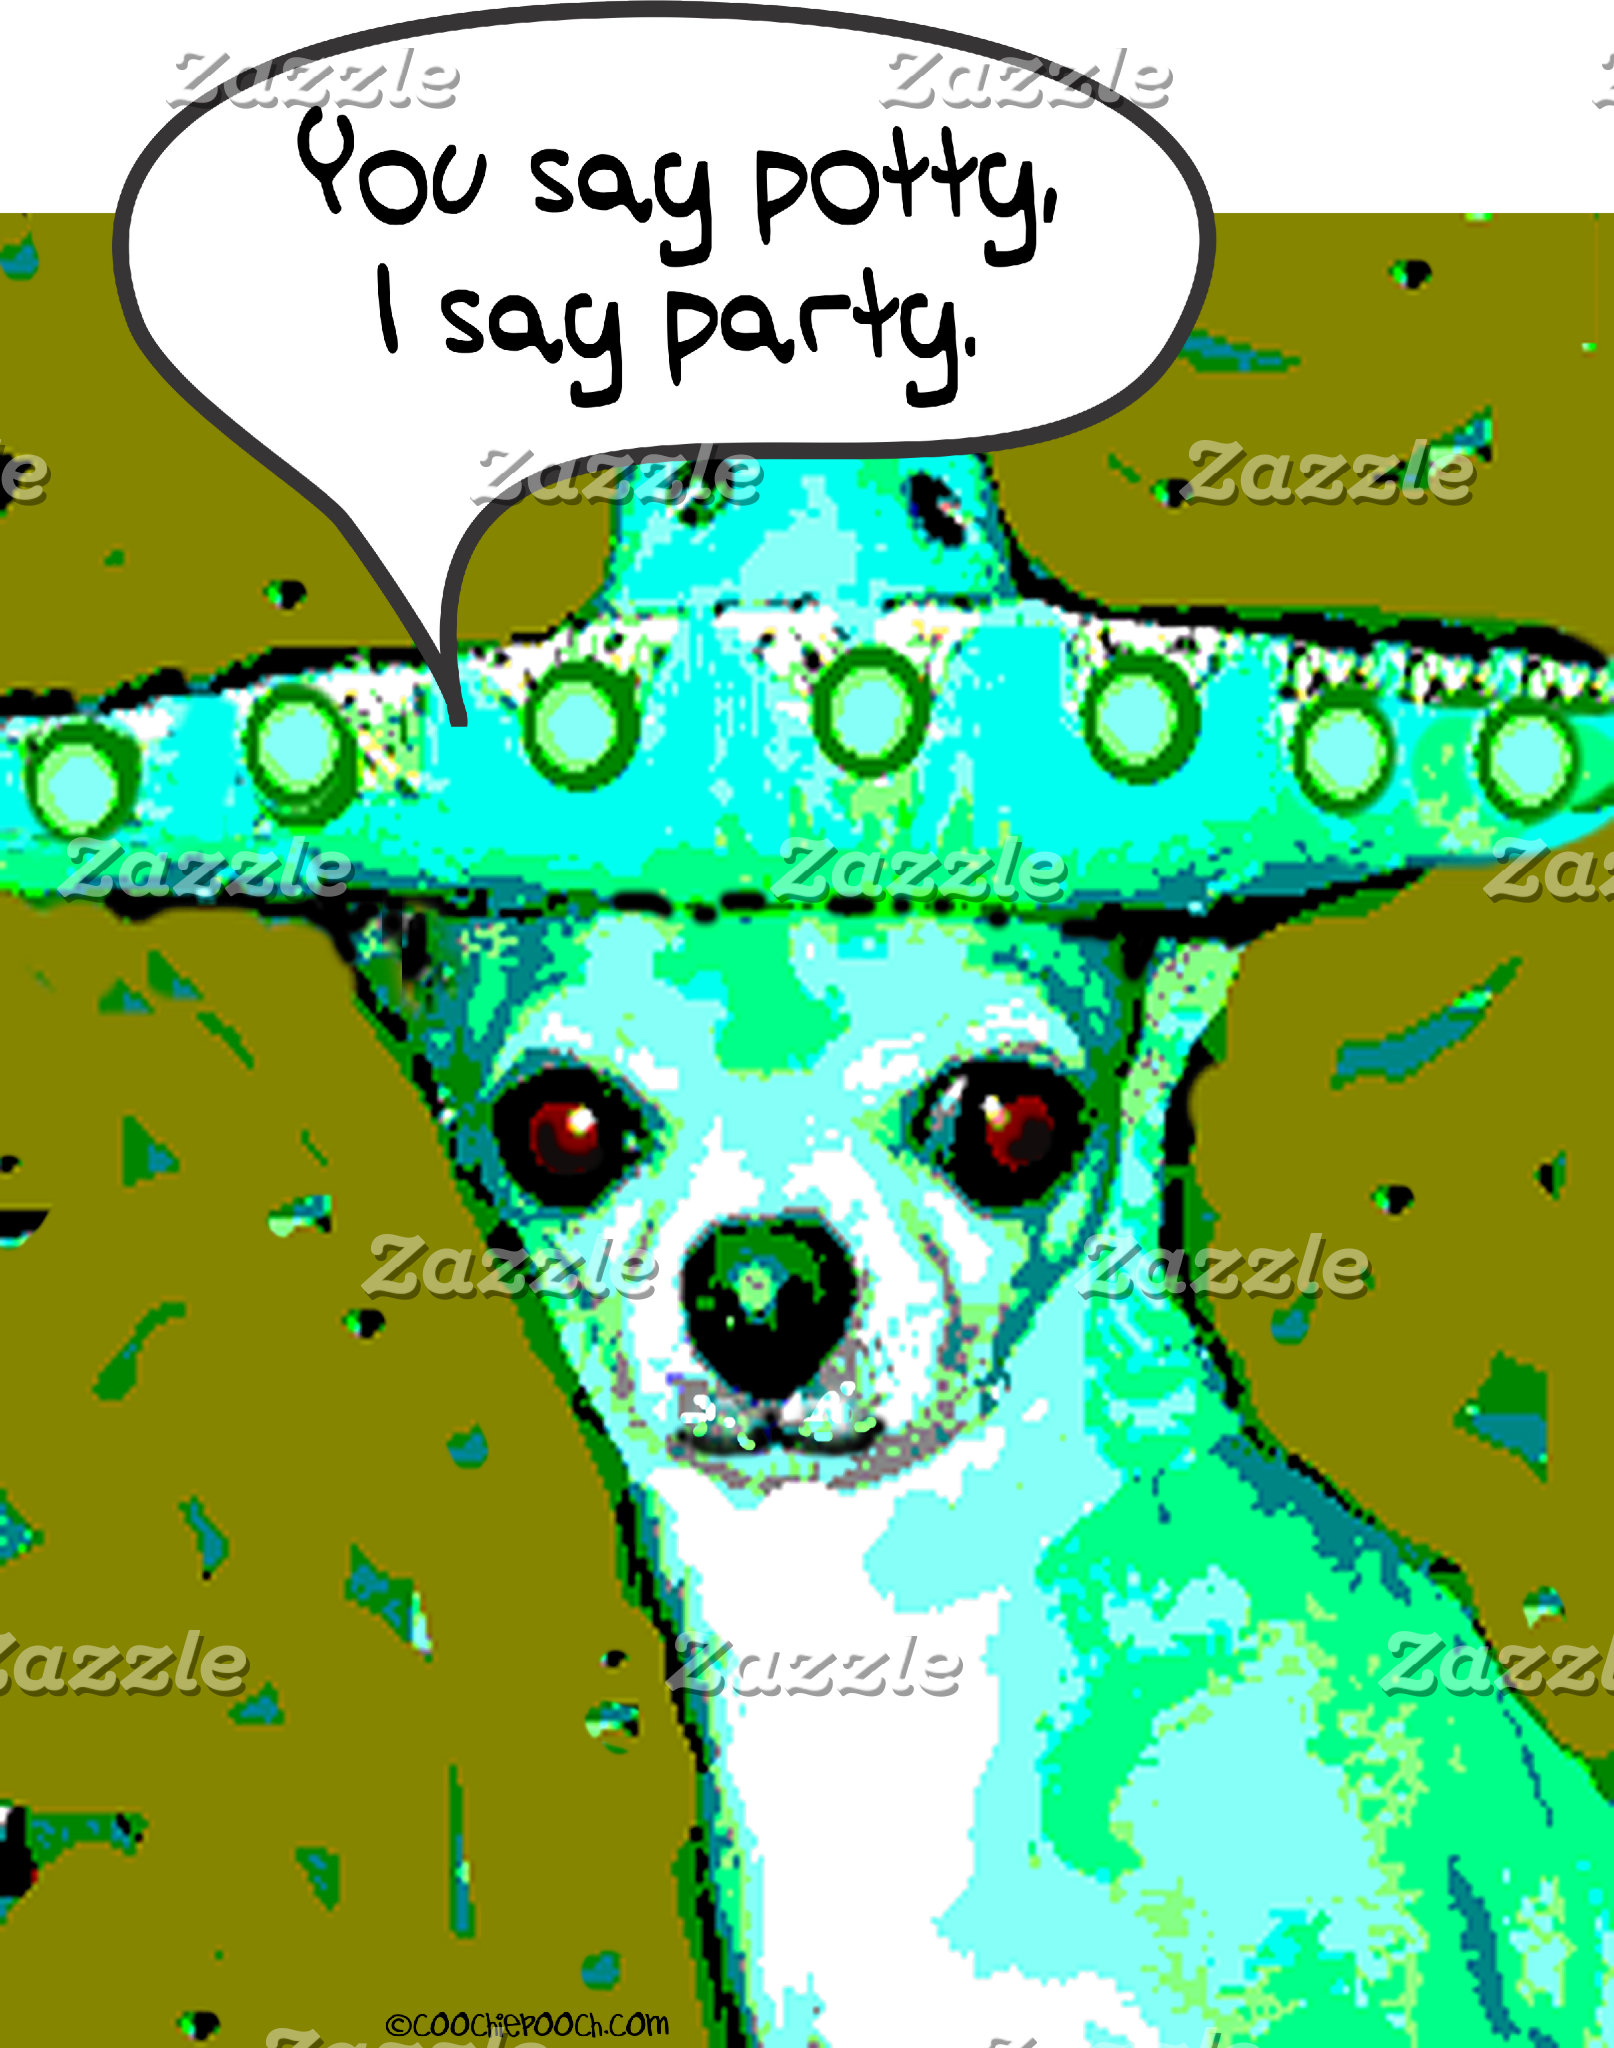 Chihuahua - You say Potty, I say Party